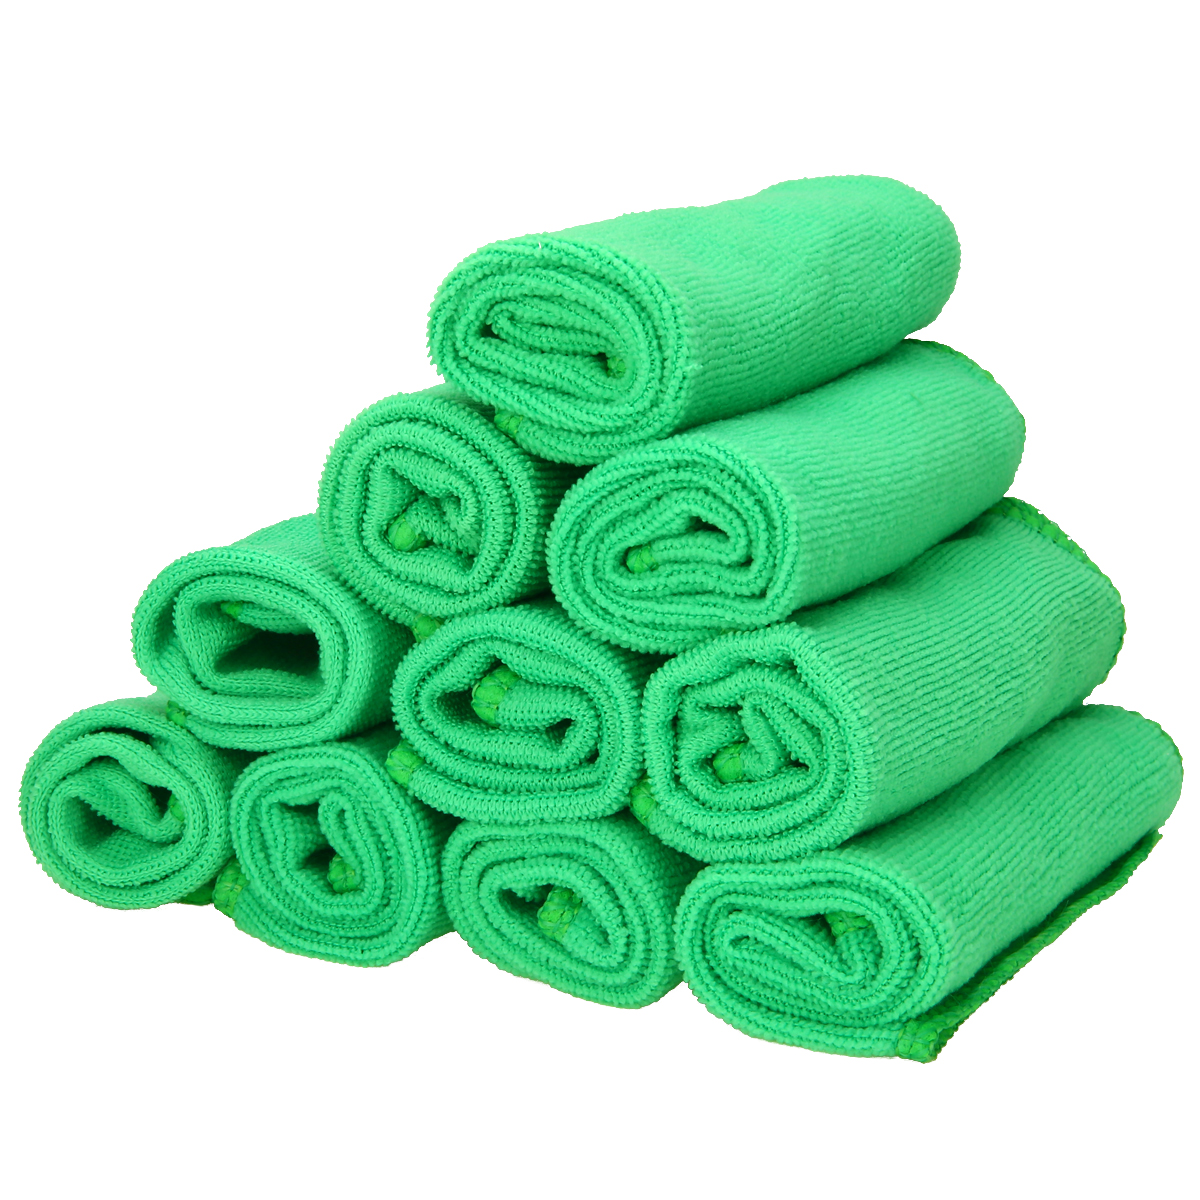 Image 3 - 10pcs/set 25 x 25cm Microfiber Car Wash Towel Soft Cleaning Auto Car Care Detailing Cloths Wash Towel-in Sponges, Cloths & Brushes from Automobiles & Motorcycles